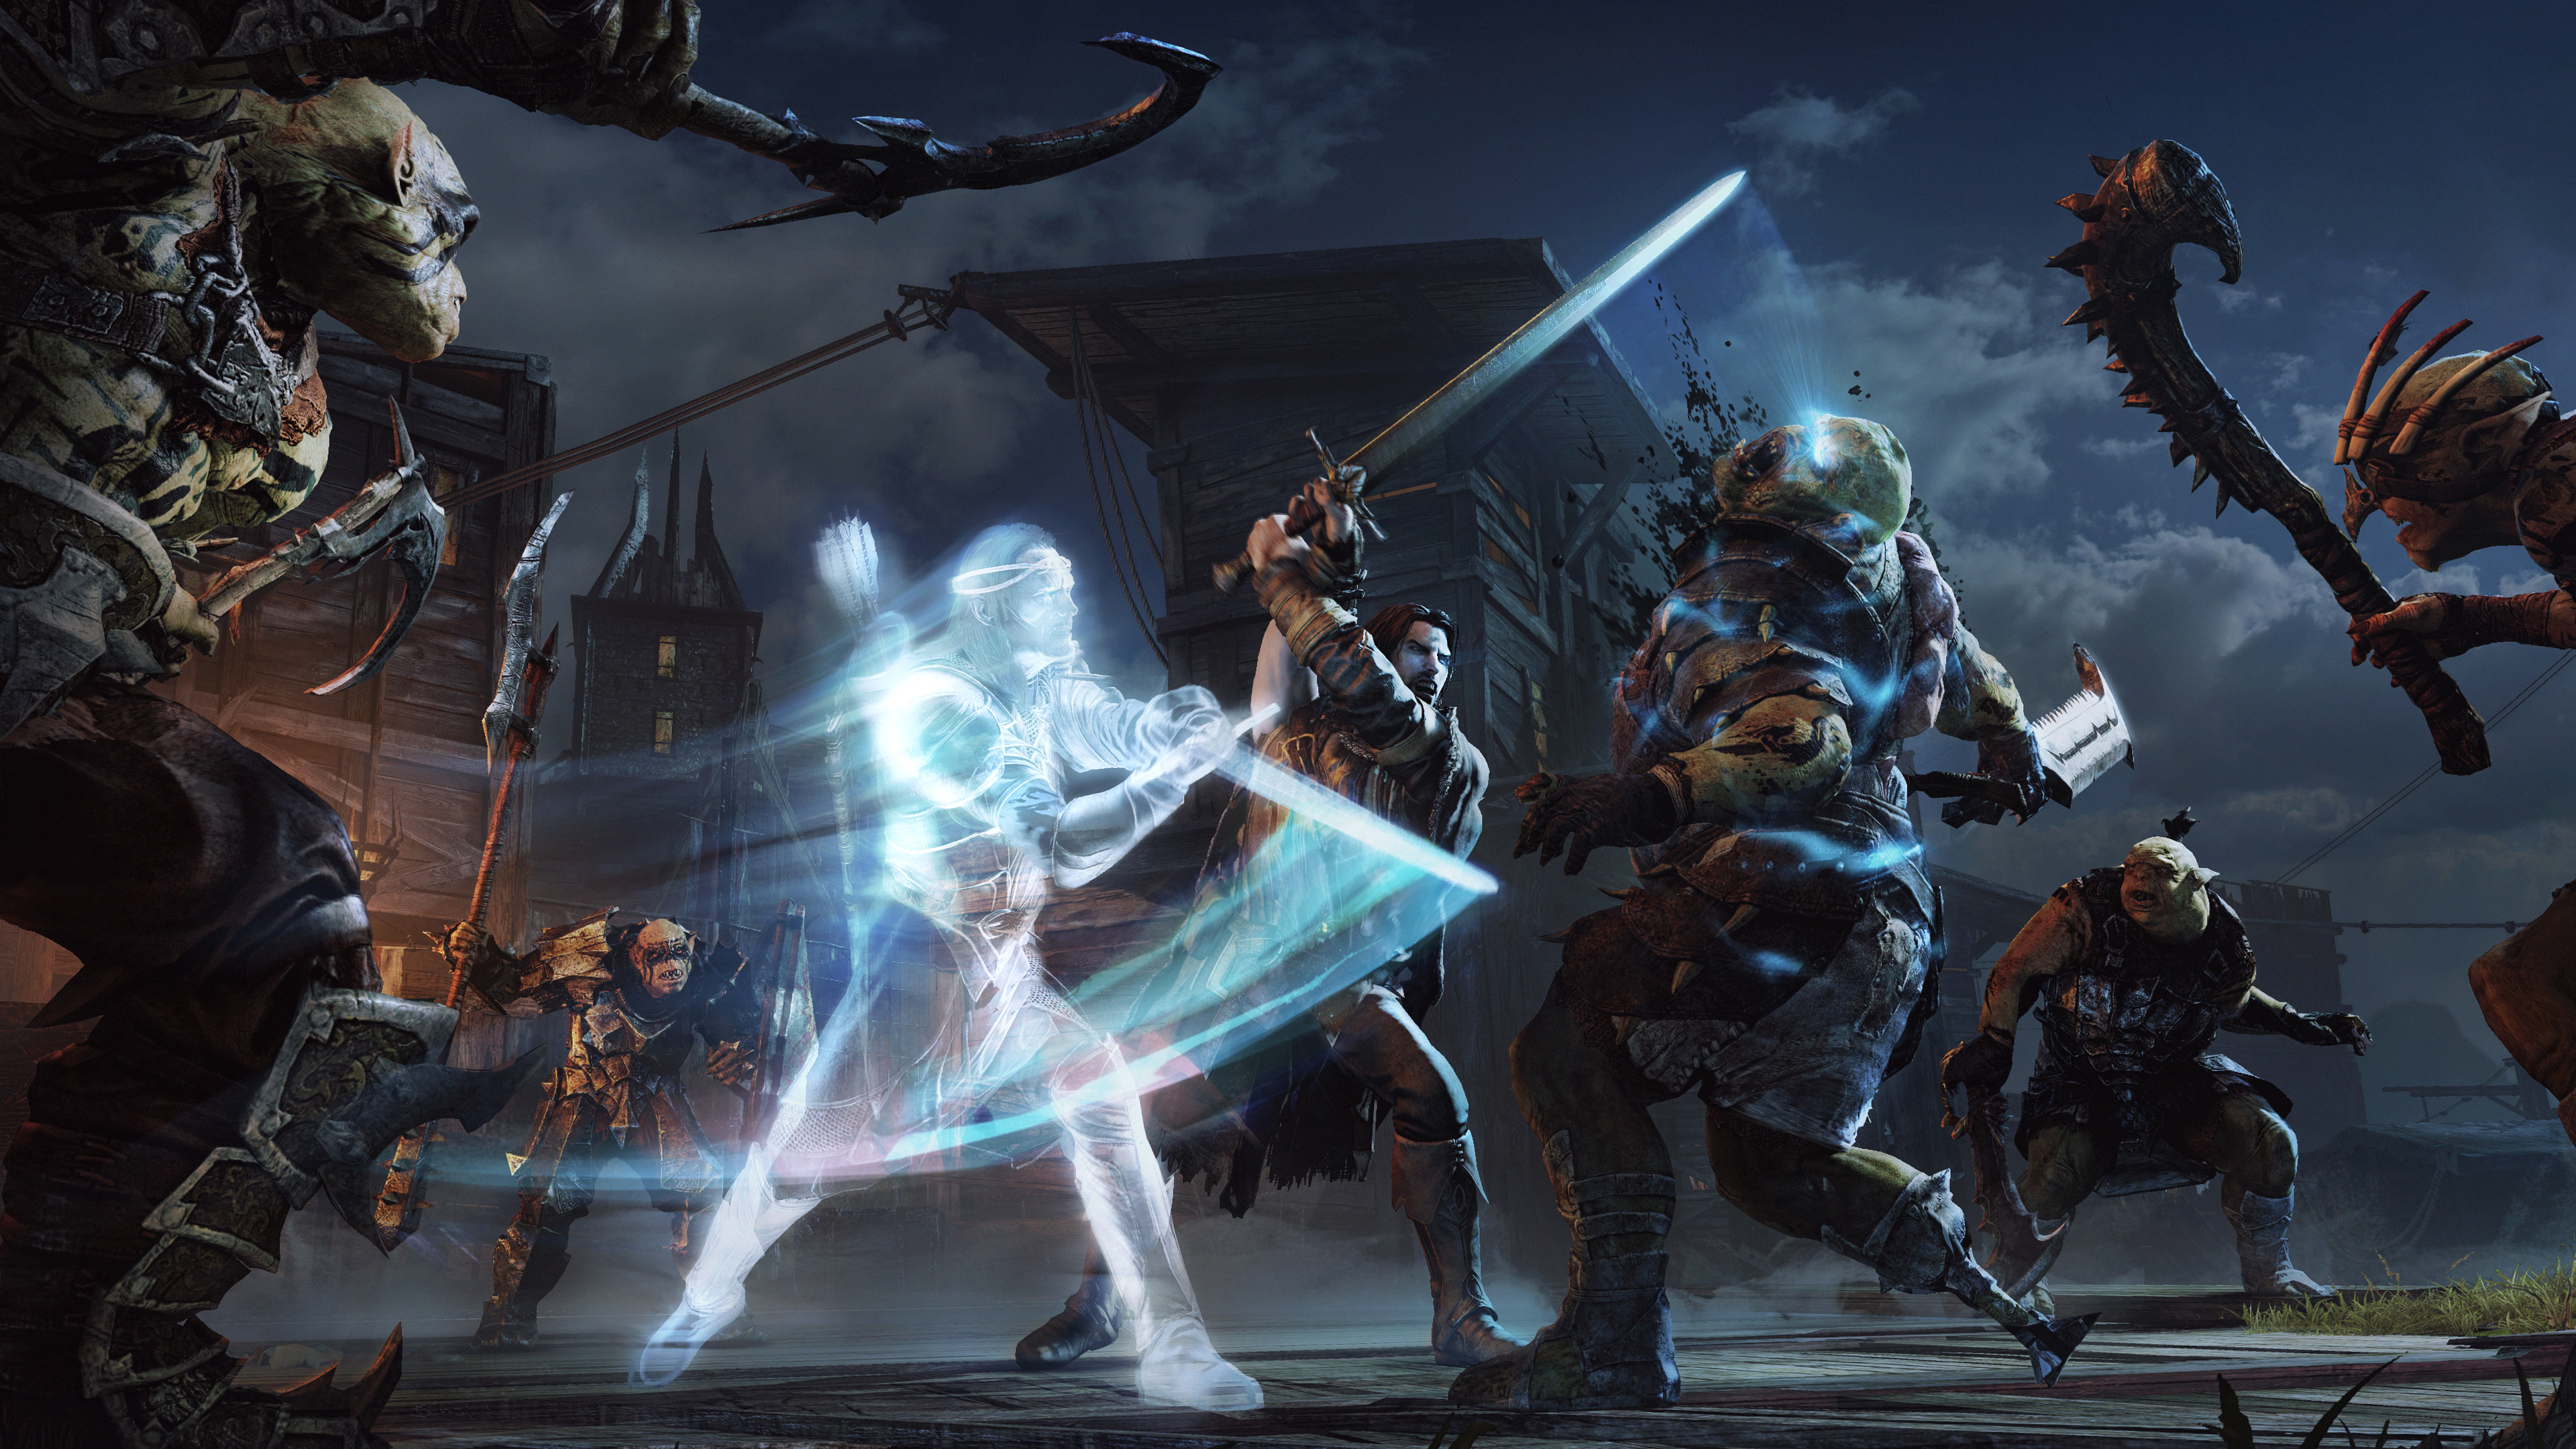 Image result for shadow of mordor lore artwork